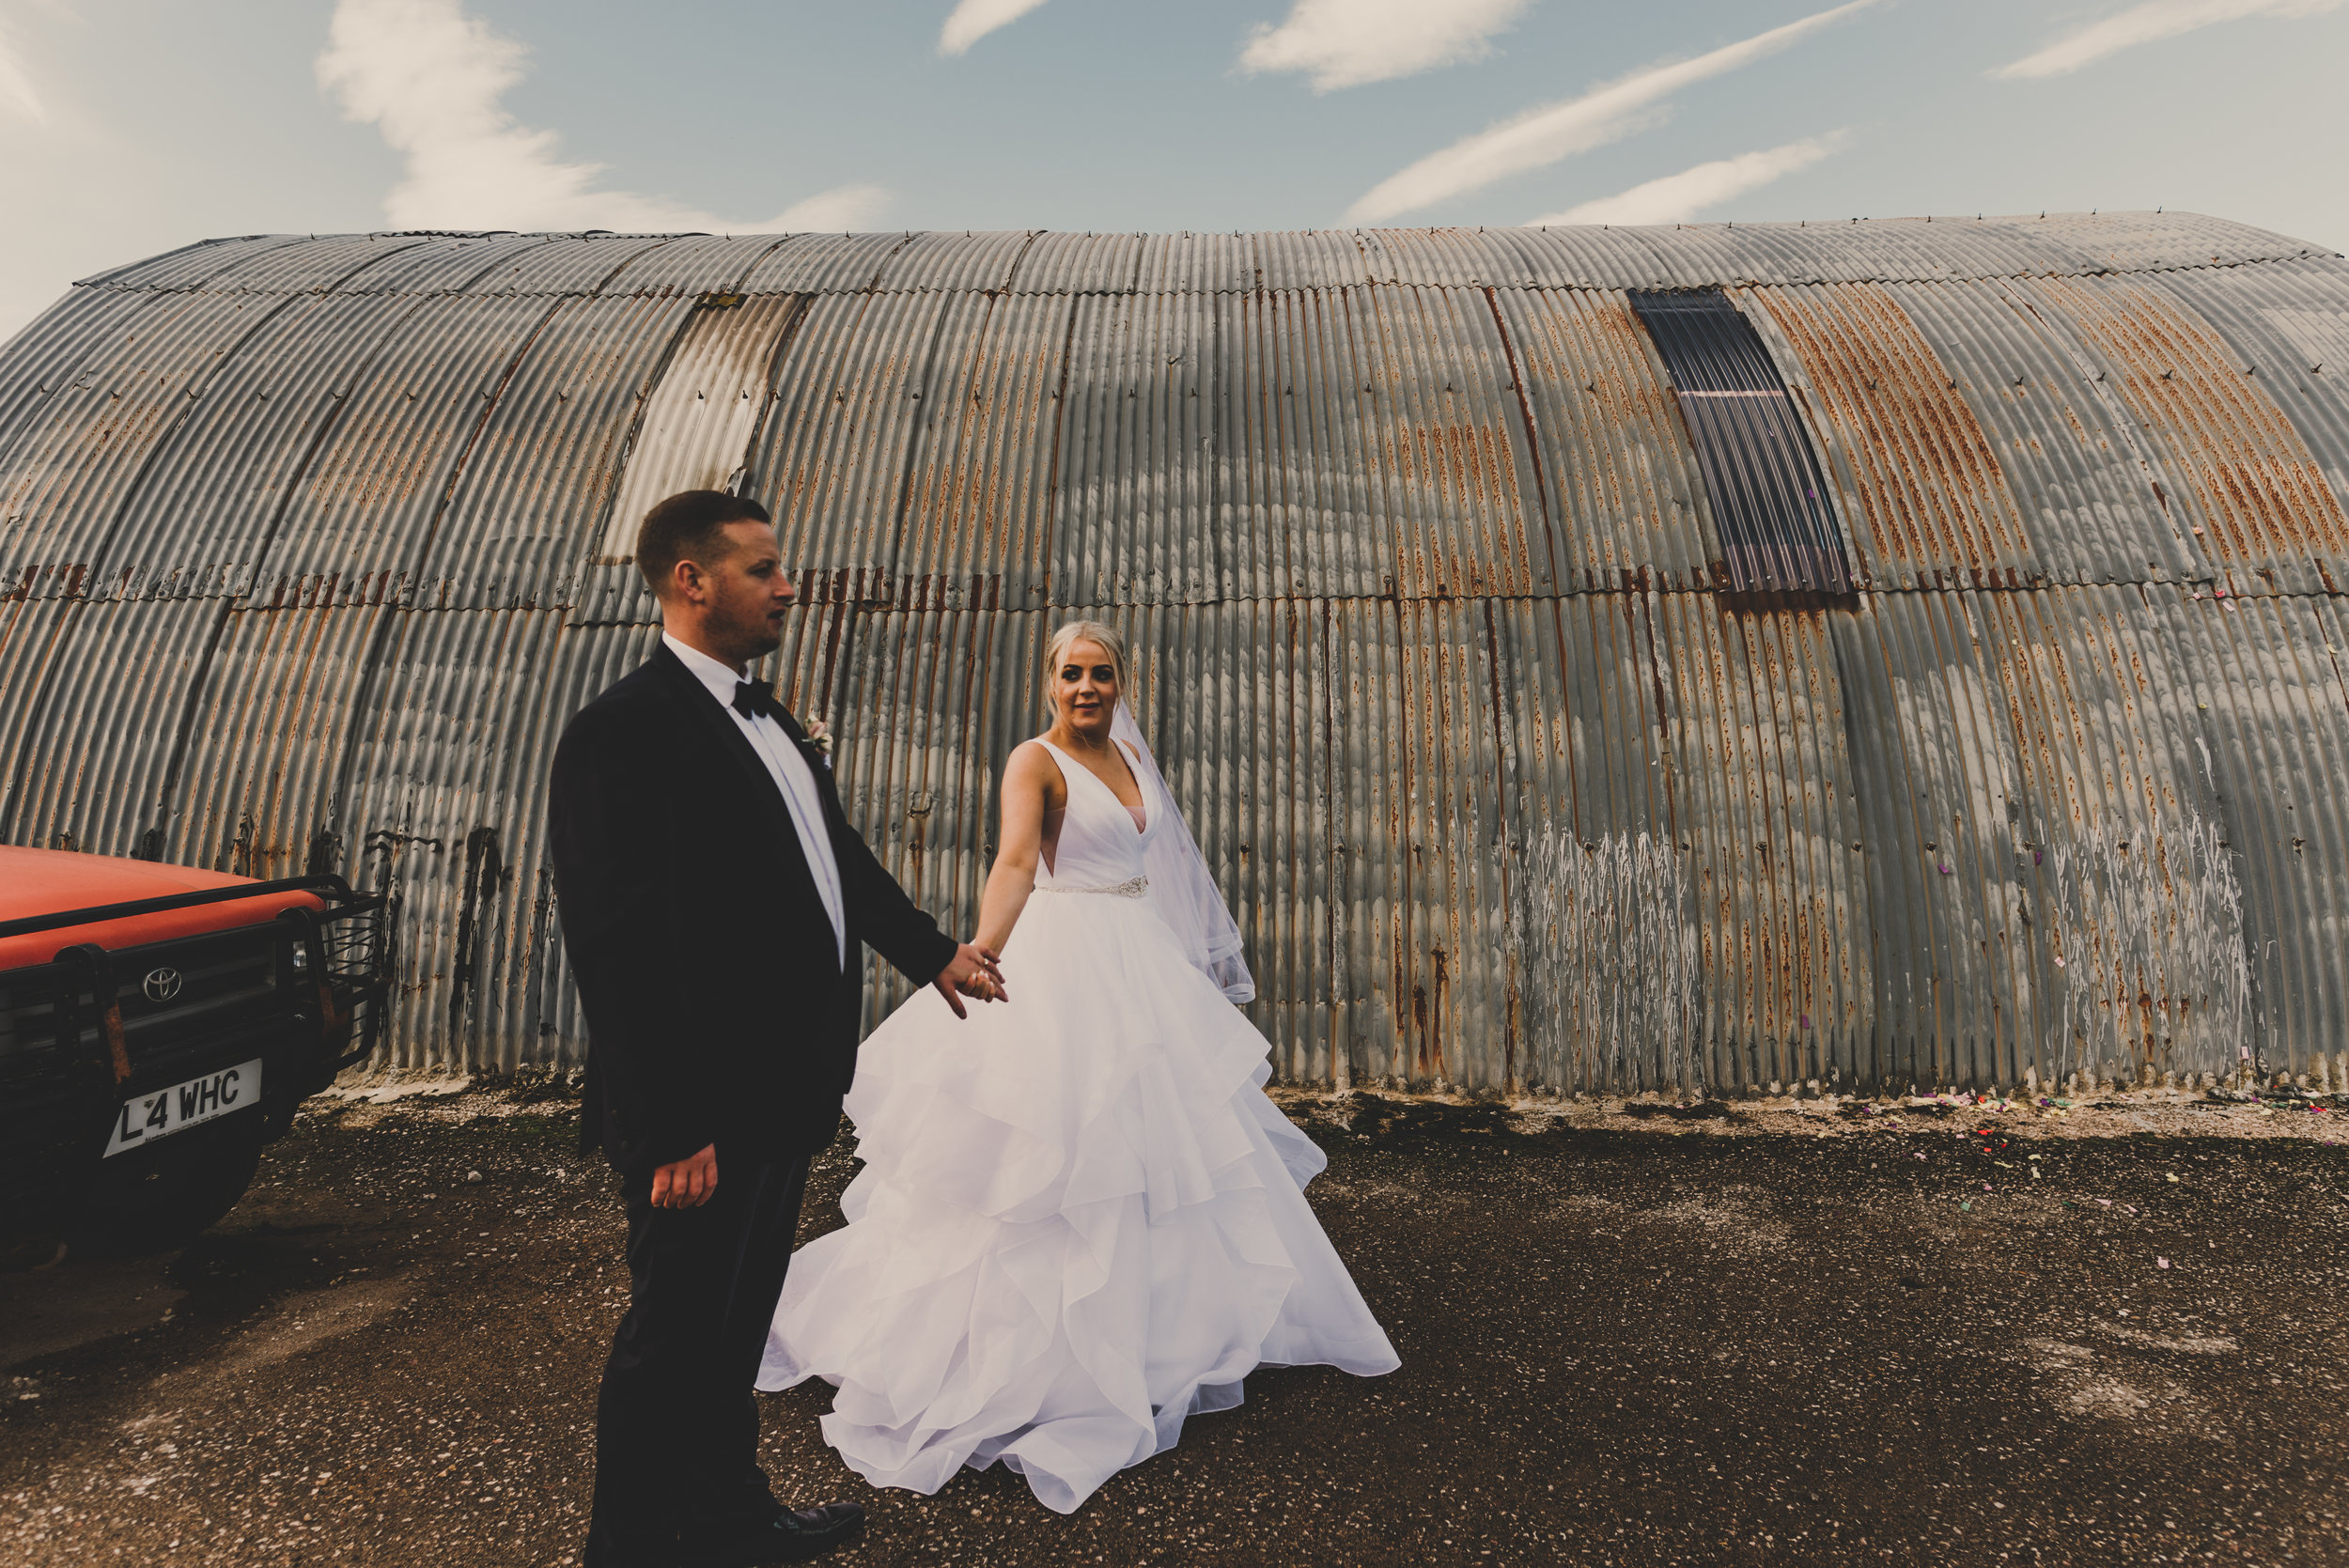 Rebecca and Dean - Eden Wedding Barn - Me and my husband couldn't thank Jade enough for everything she done on our wedding day she was perfect xxLovely girl who took amazing pictures of my cousins big day! Would 100% recommend!